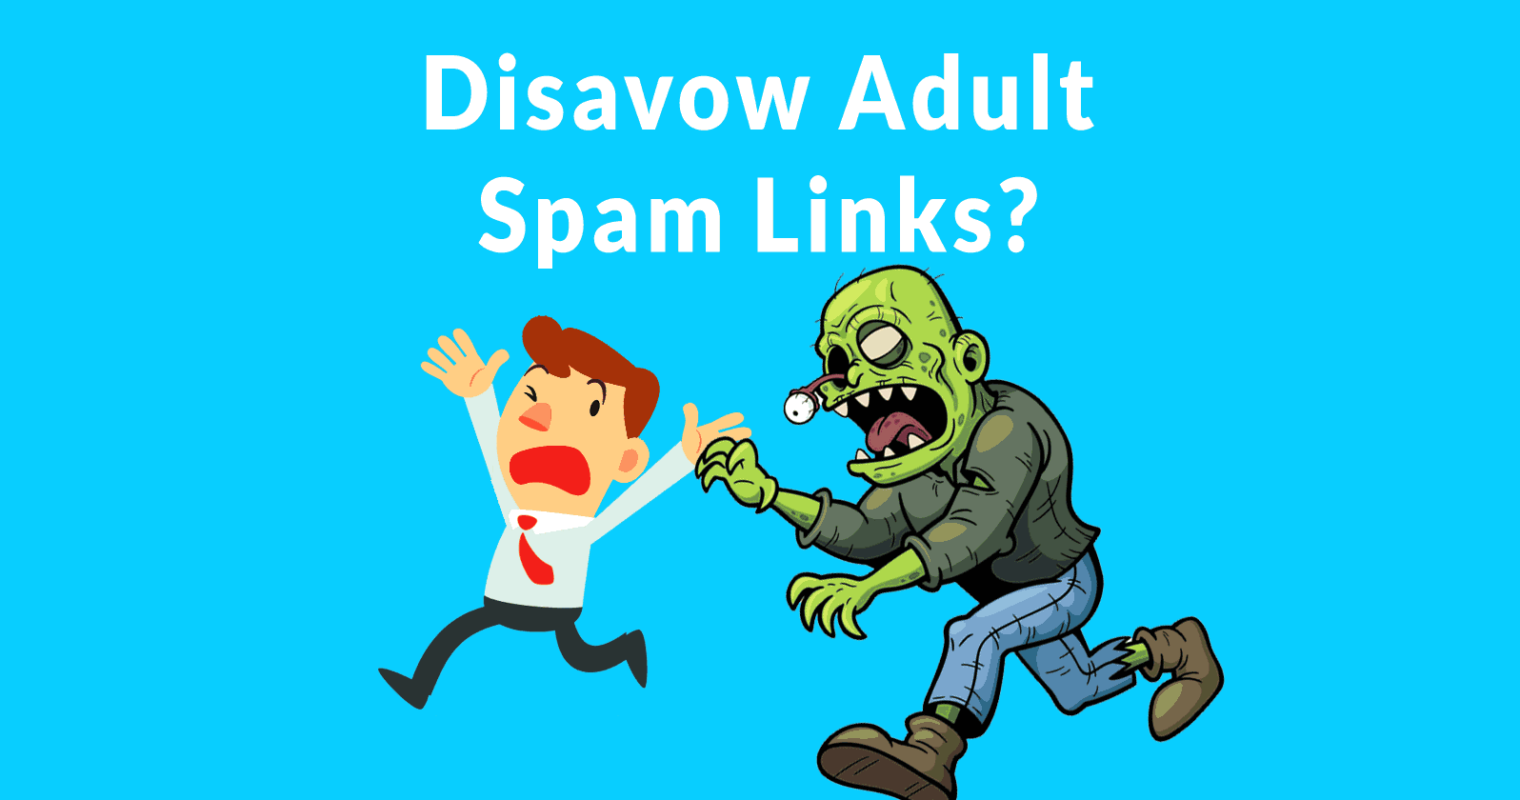 Adult Spam Links – Should You Disavow Them?